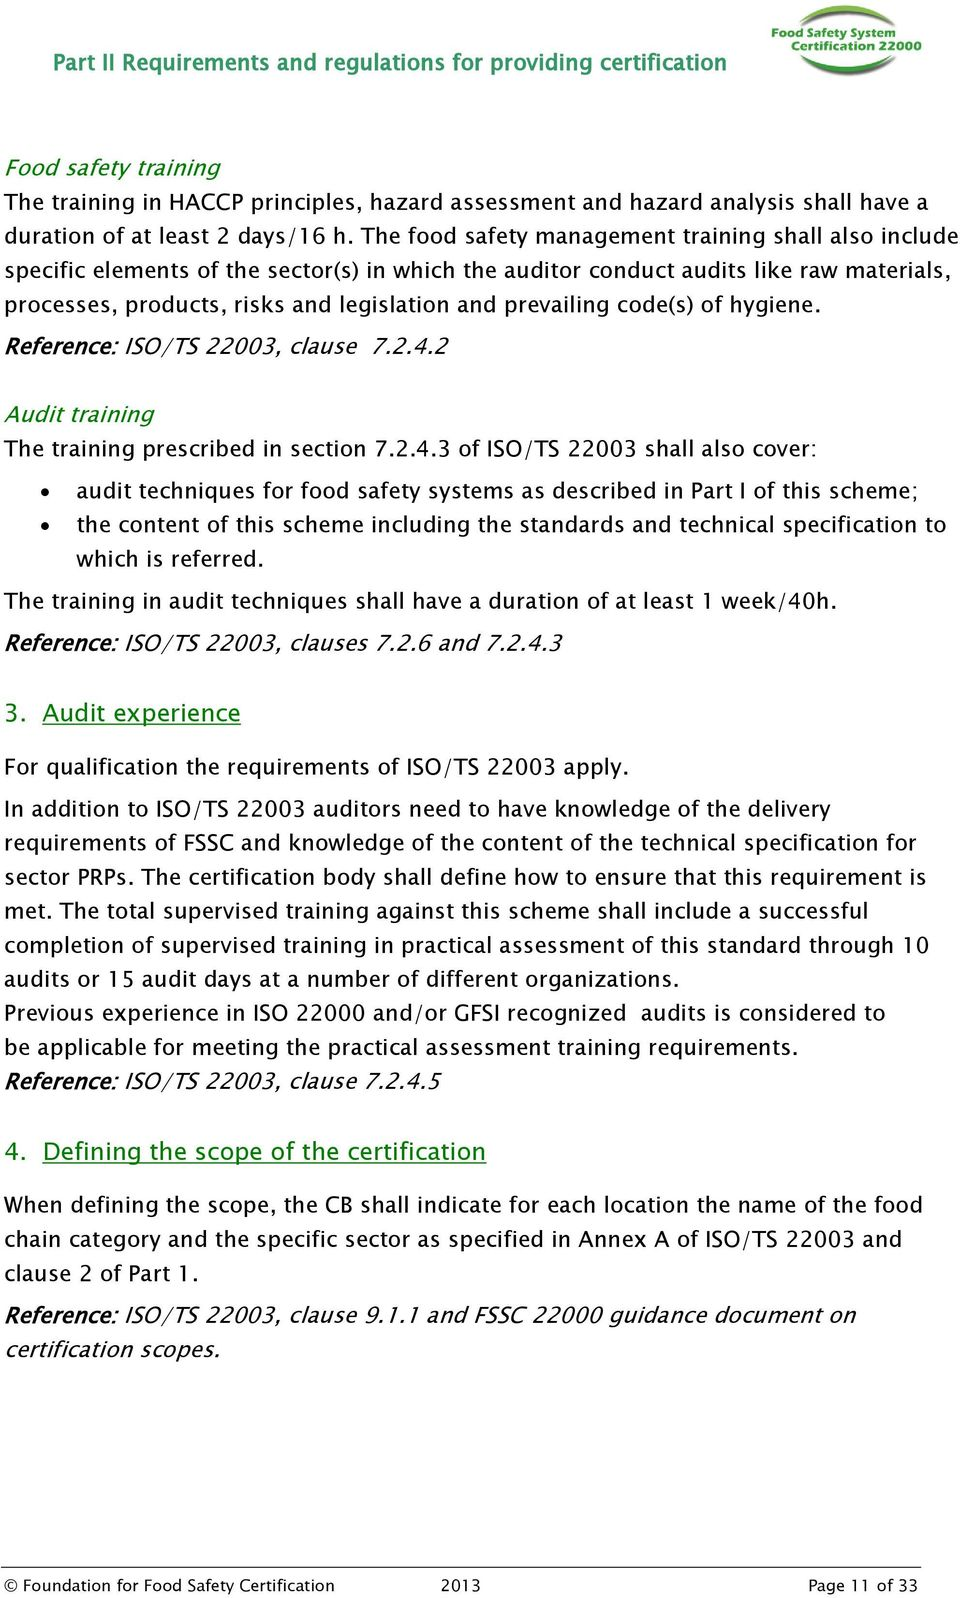 prevailing code(s) of hygiene. Reference: ISO/TS 22003, clause 7.2.4.